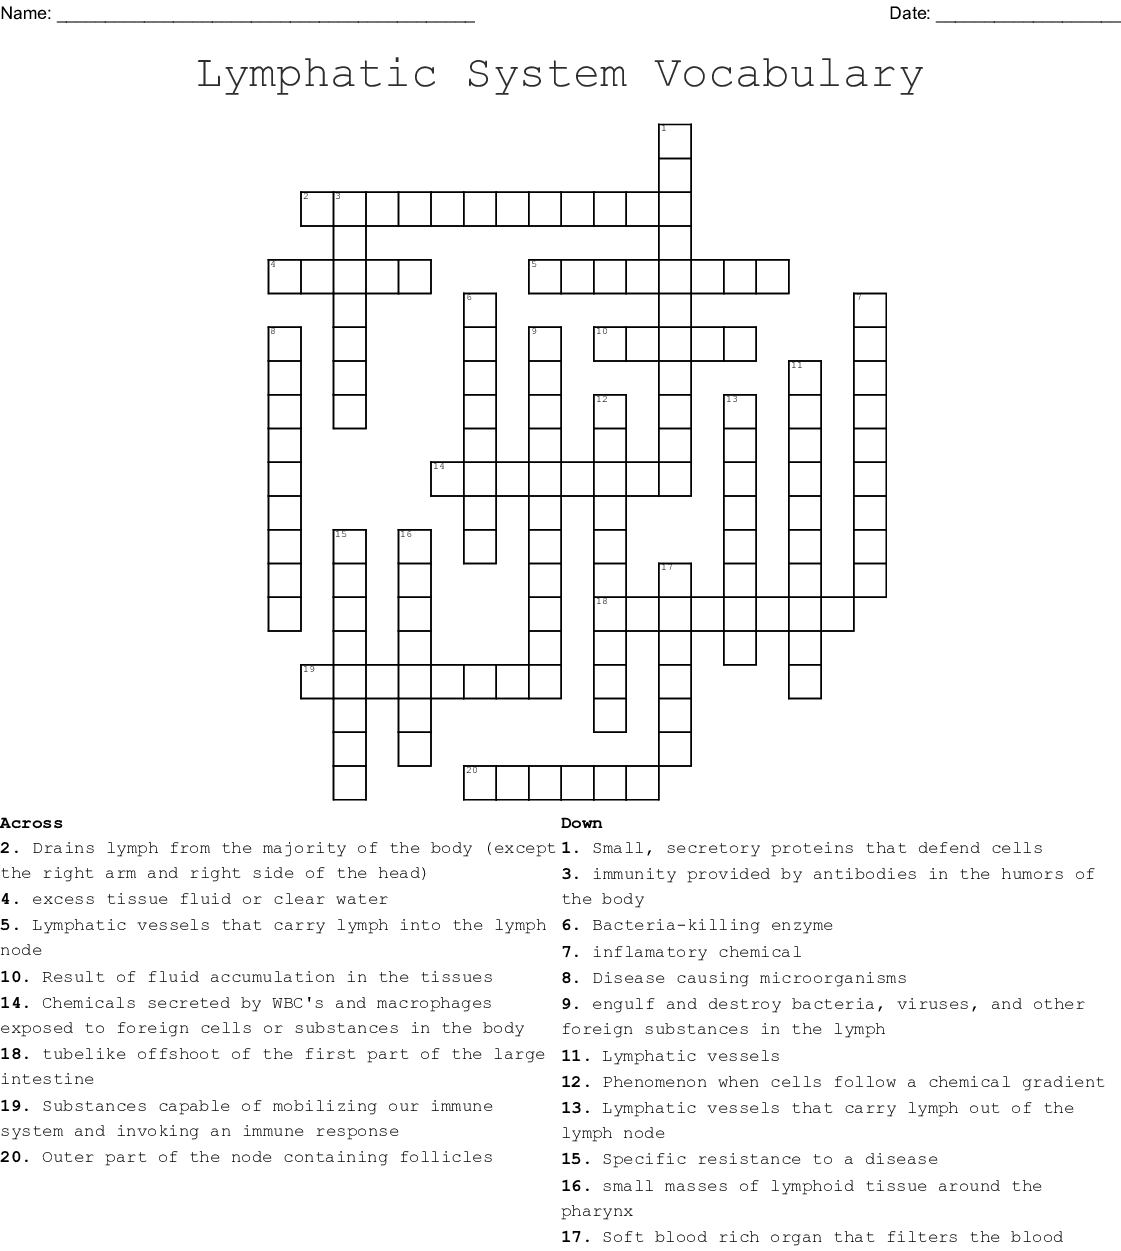 Lymphatic System Vocabulary Crossword Wordmint